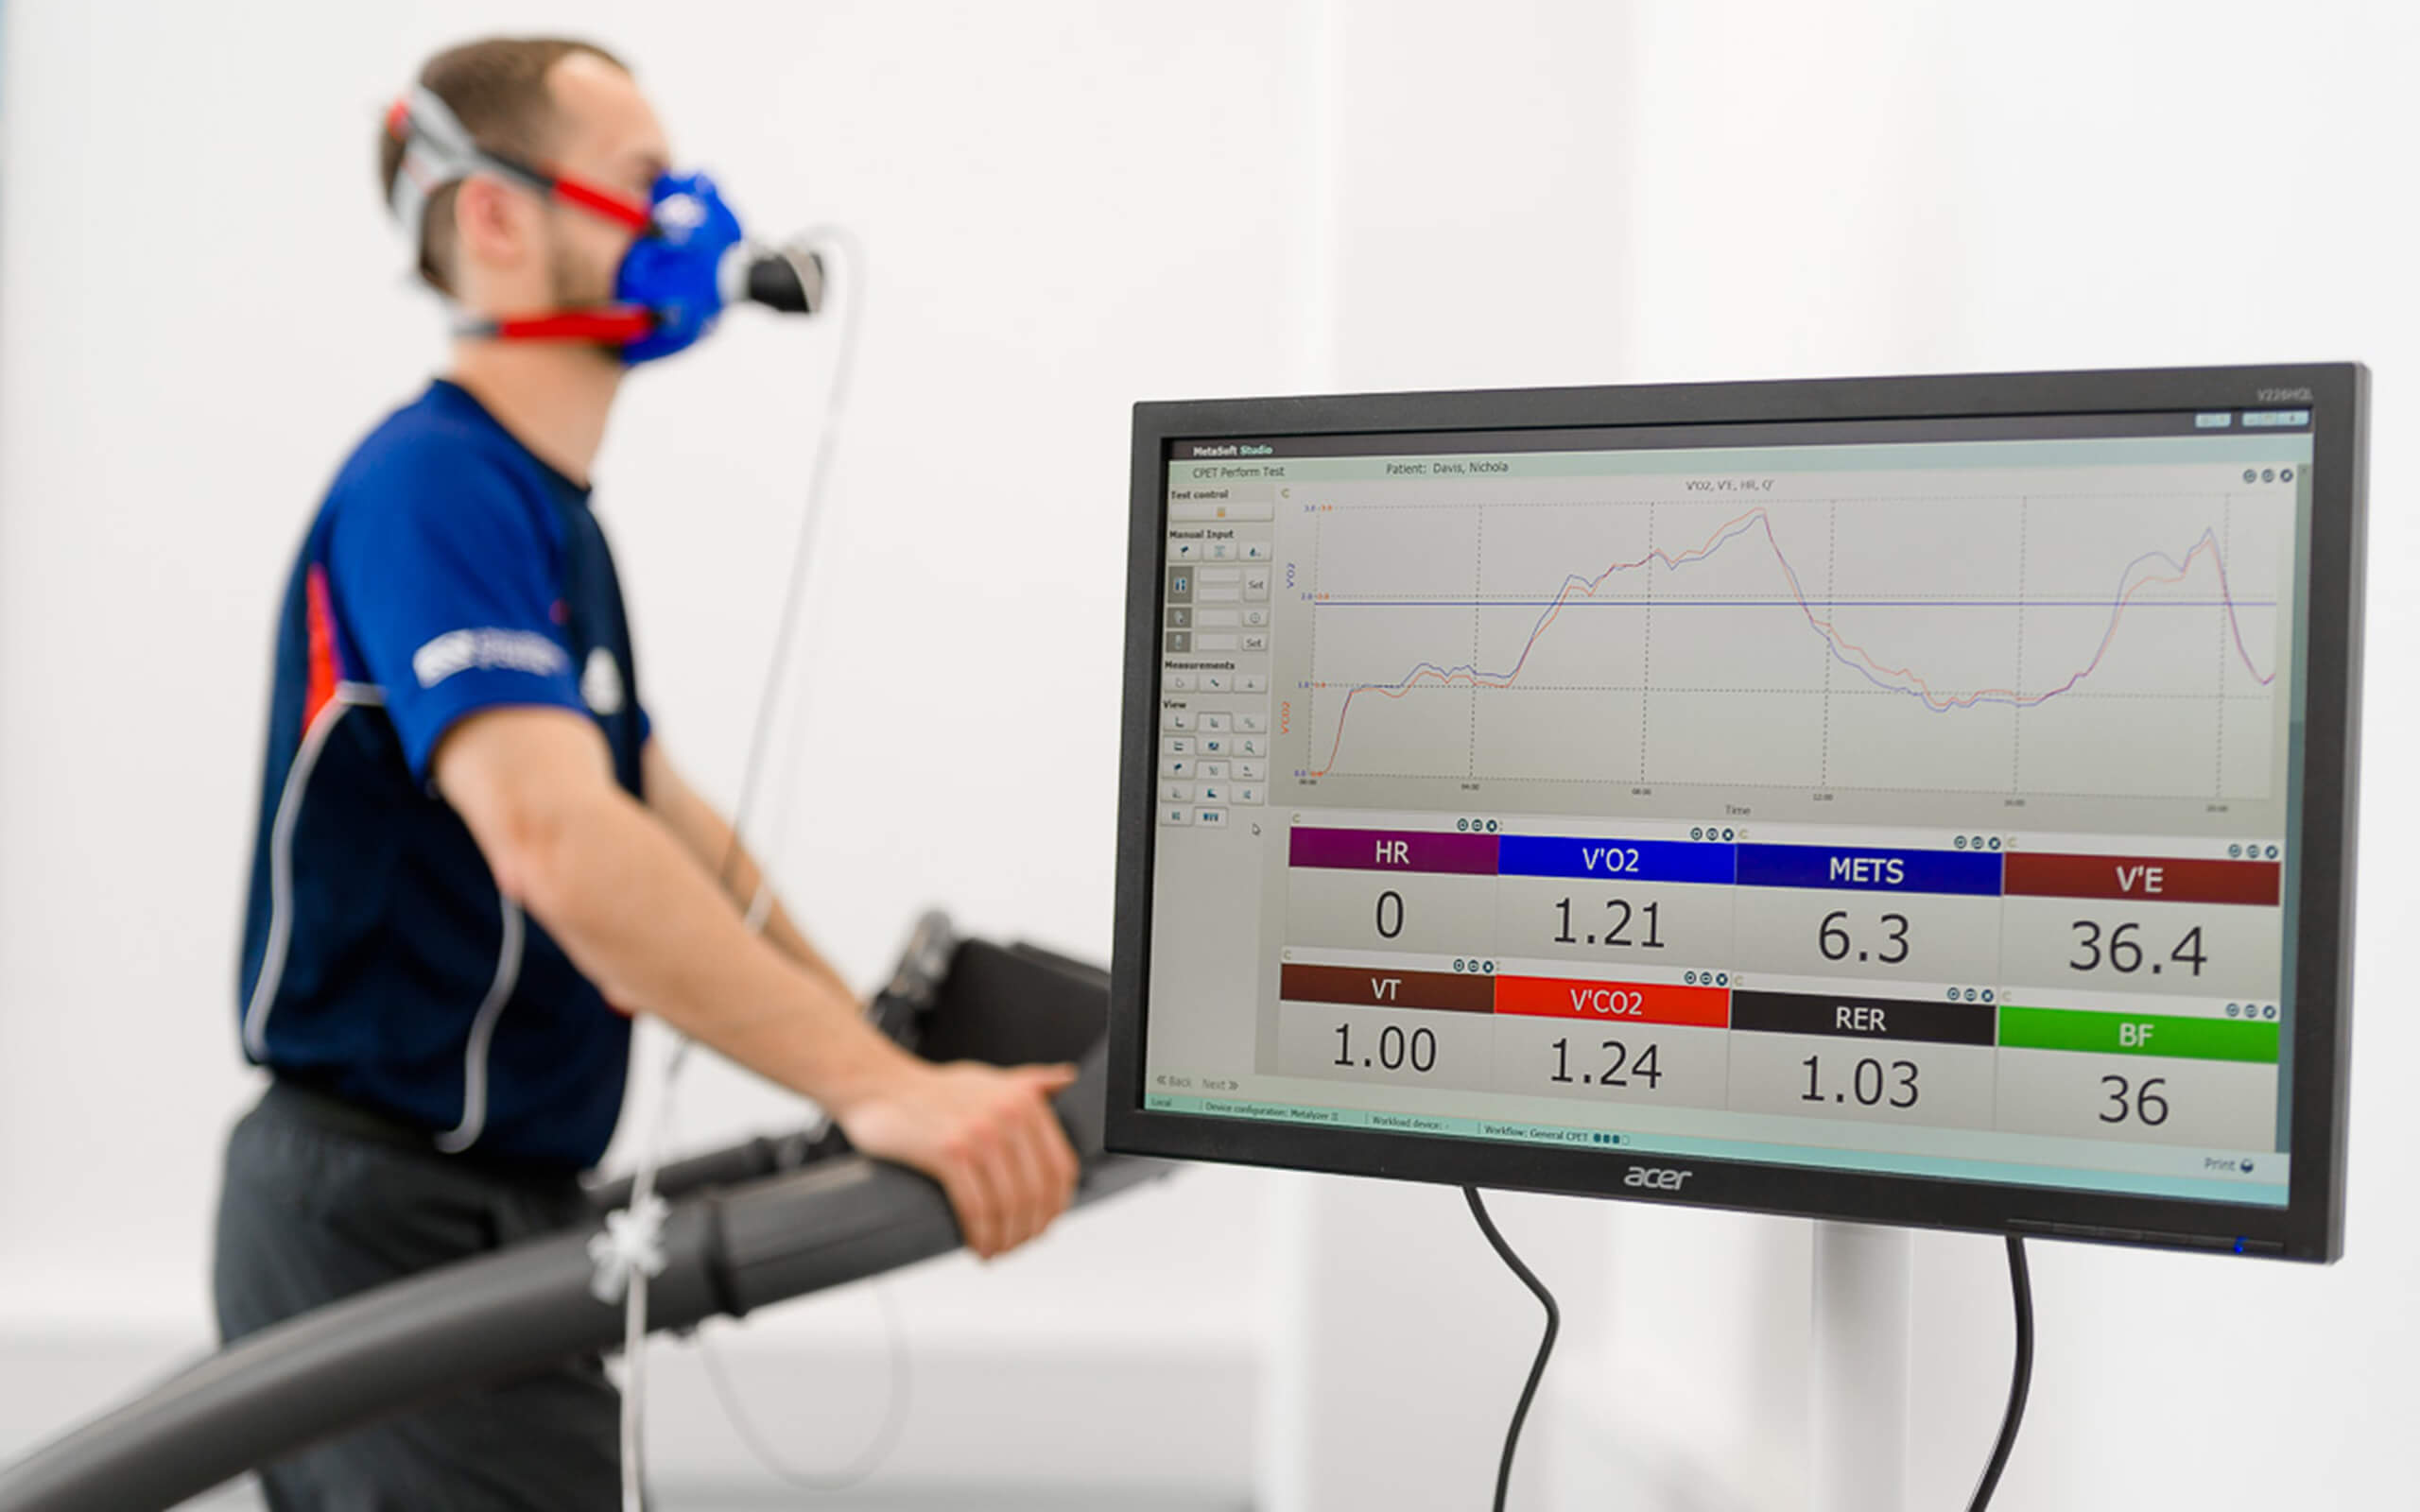 performance research in the High Performance Unit